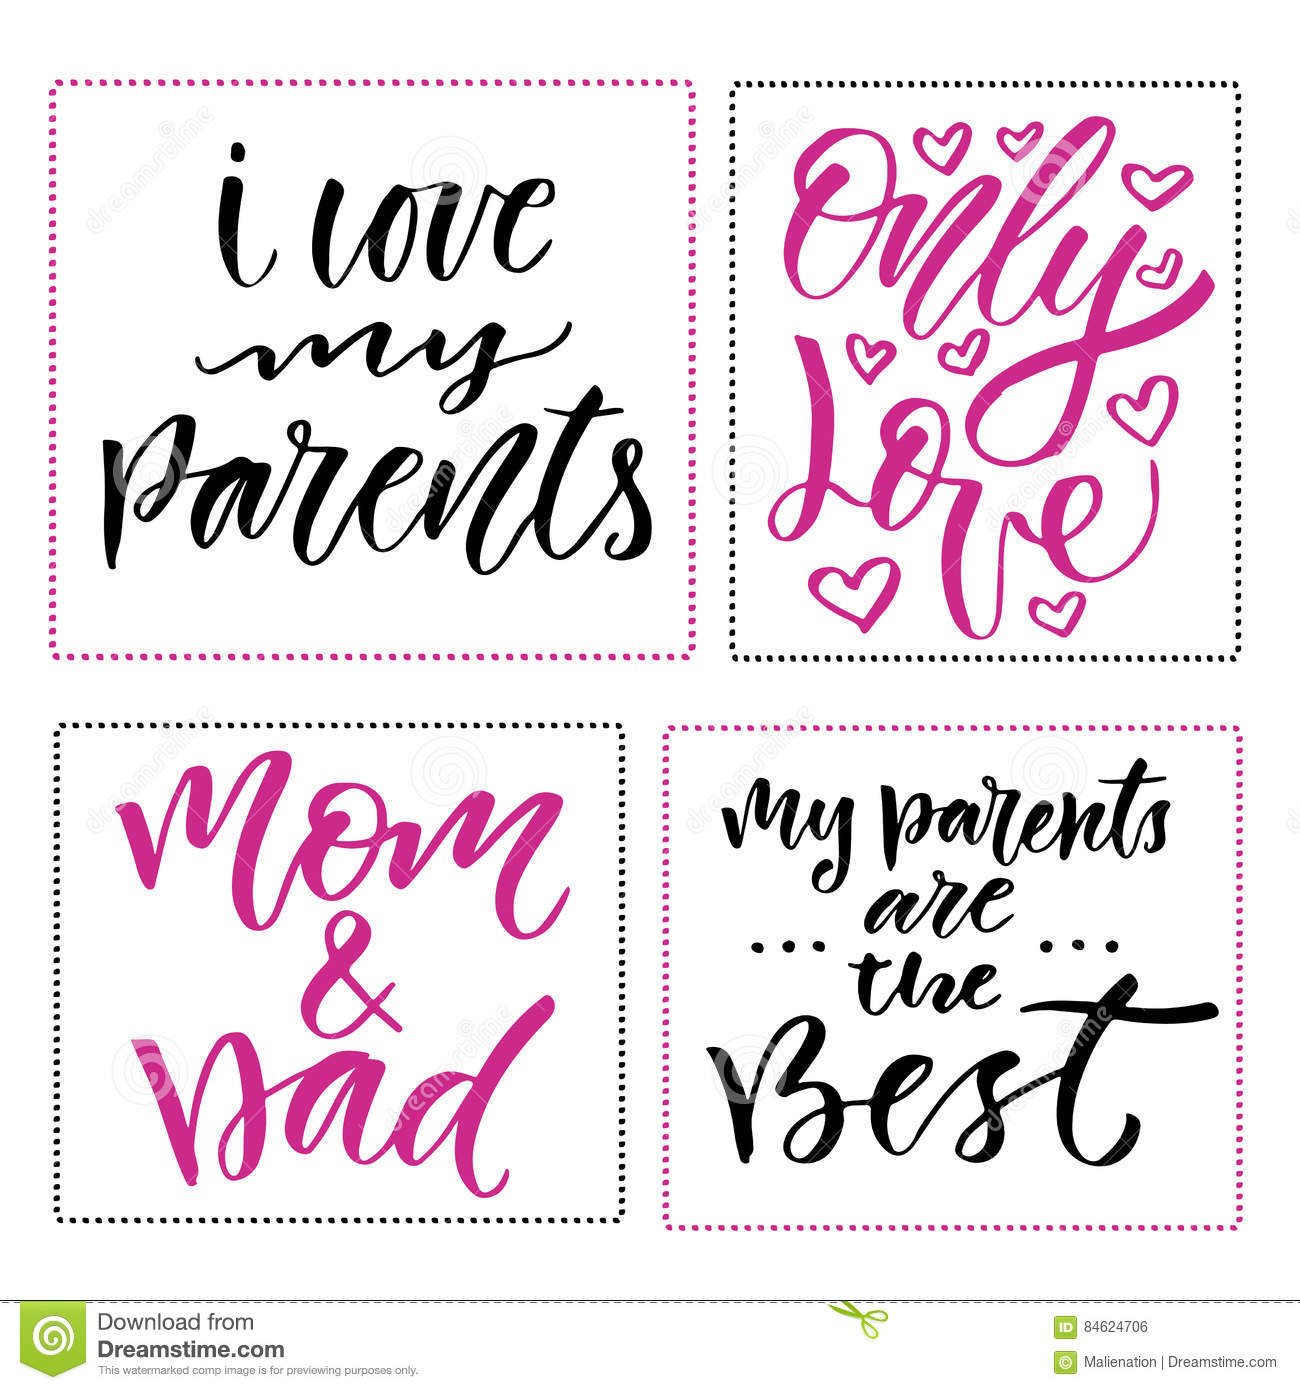 Happy Family Day Prints Set Of Hand Drawn Calligraphic Phrases